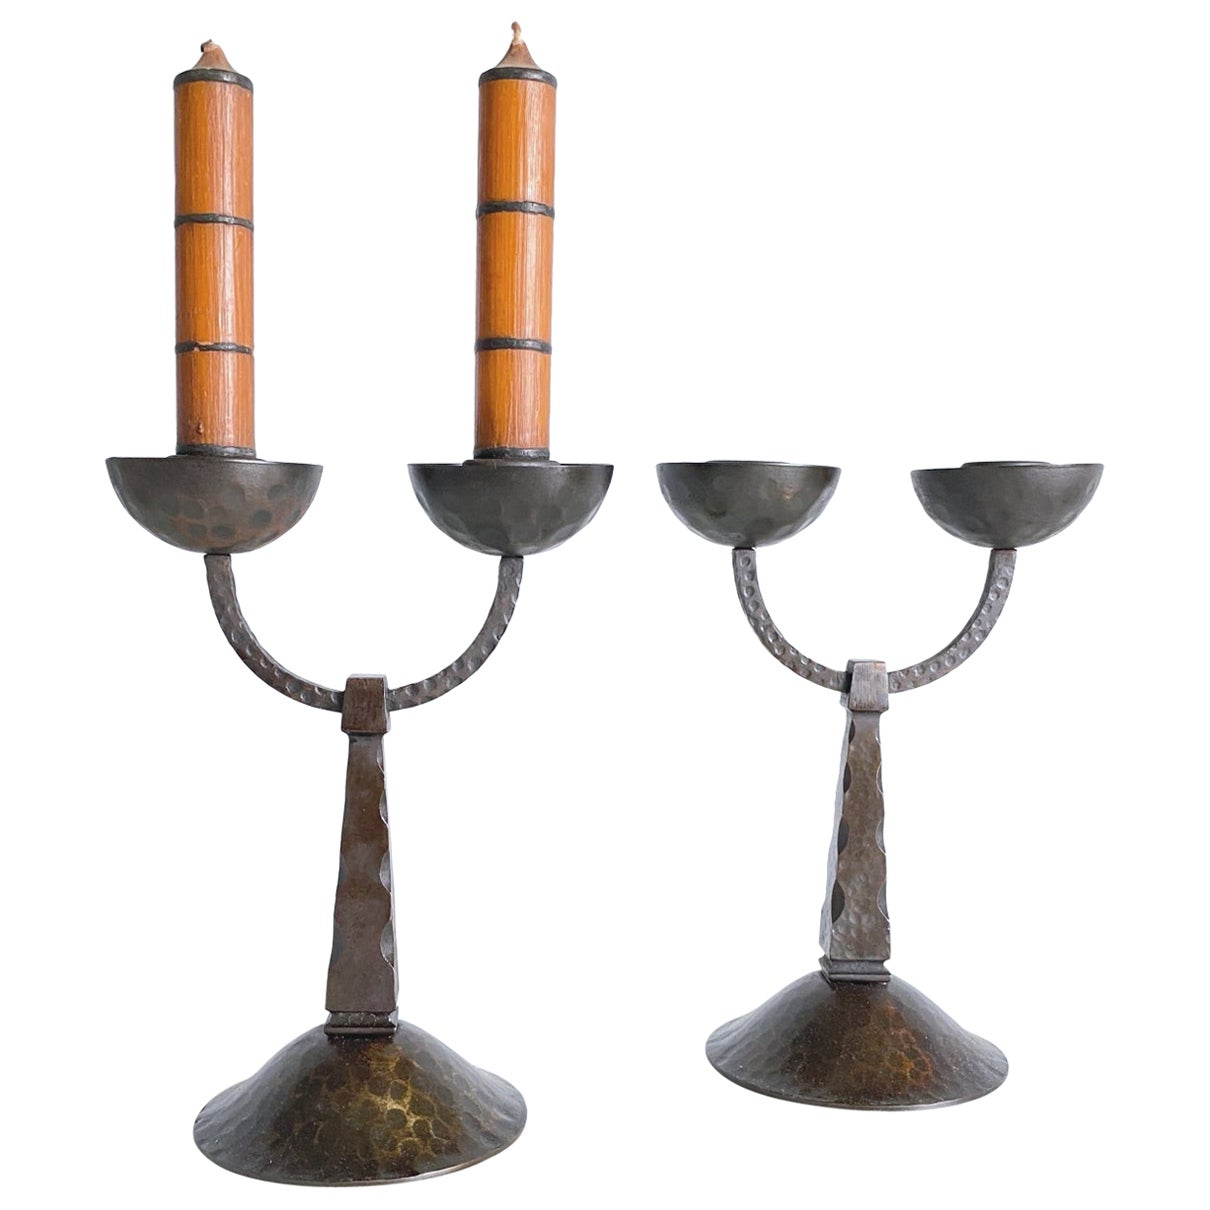 Pair of Midcentury Modern Forged Wrought Iron Candleholder, 1950s, Austria